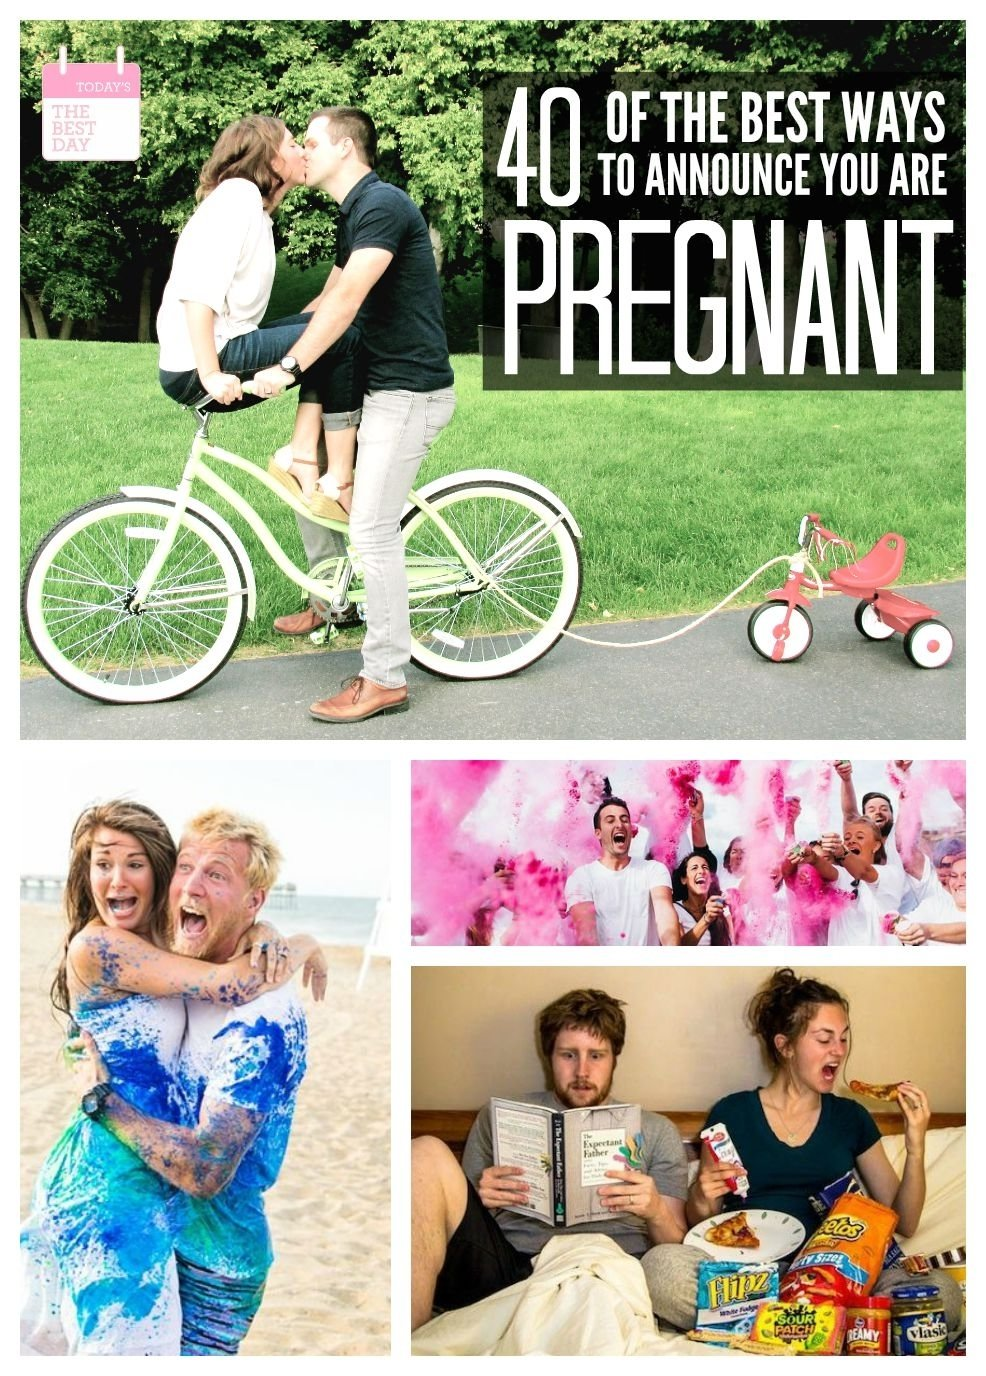 10 Spectacular Ideas For Announcing Pregnancy To Family 40 of the best ways to announce you are pregnant todays the best day 2020